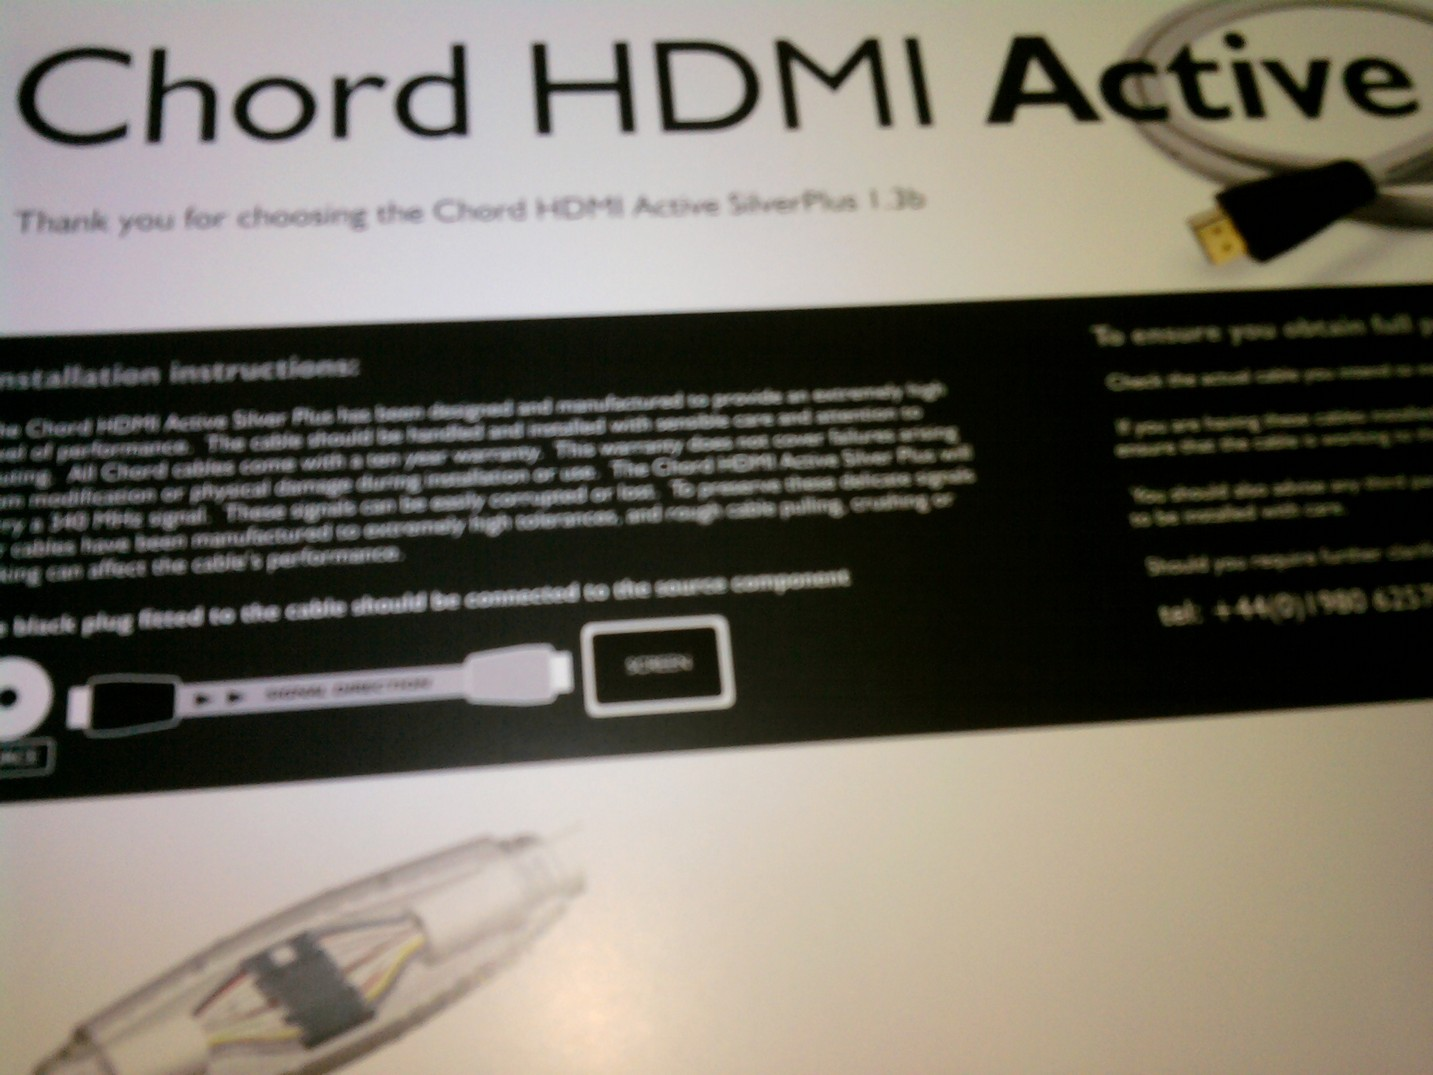 Chord HDMI Active Silver Plus 1.3b 1.5m New